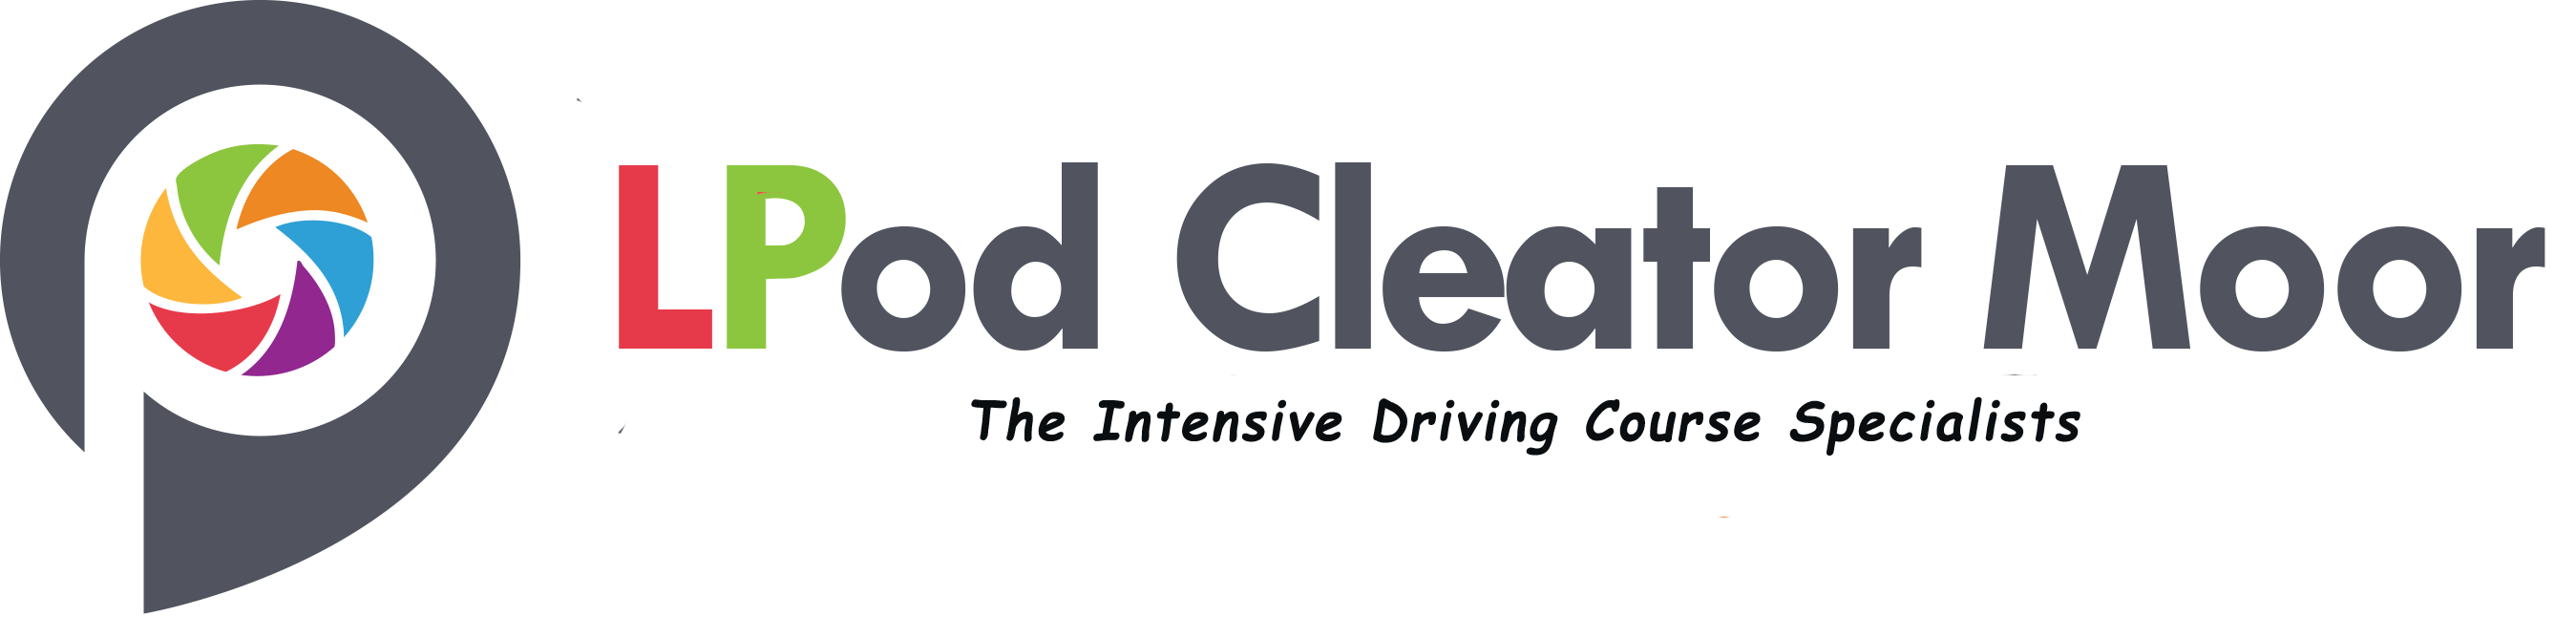 intensive driving courses Cleator Moor